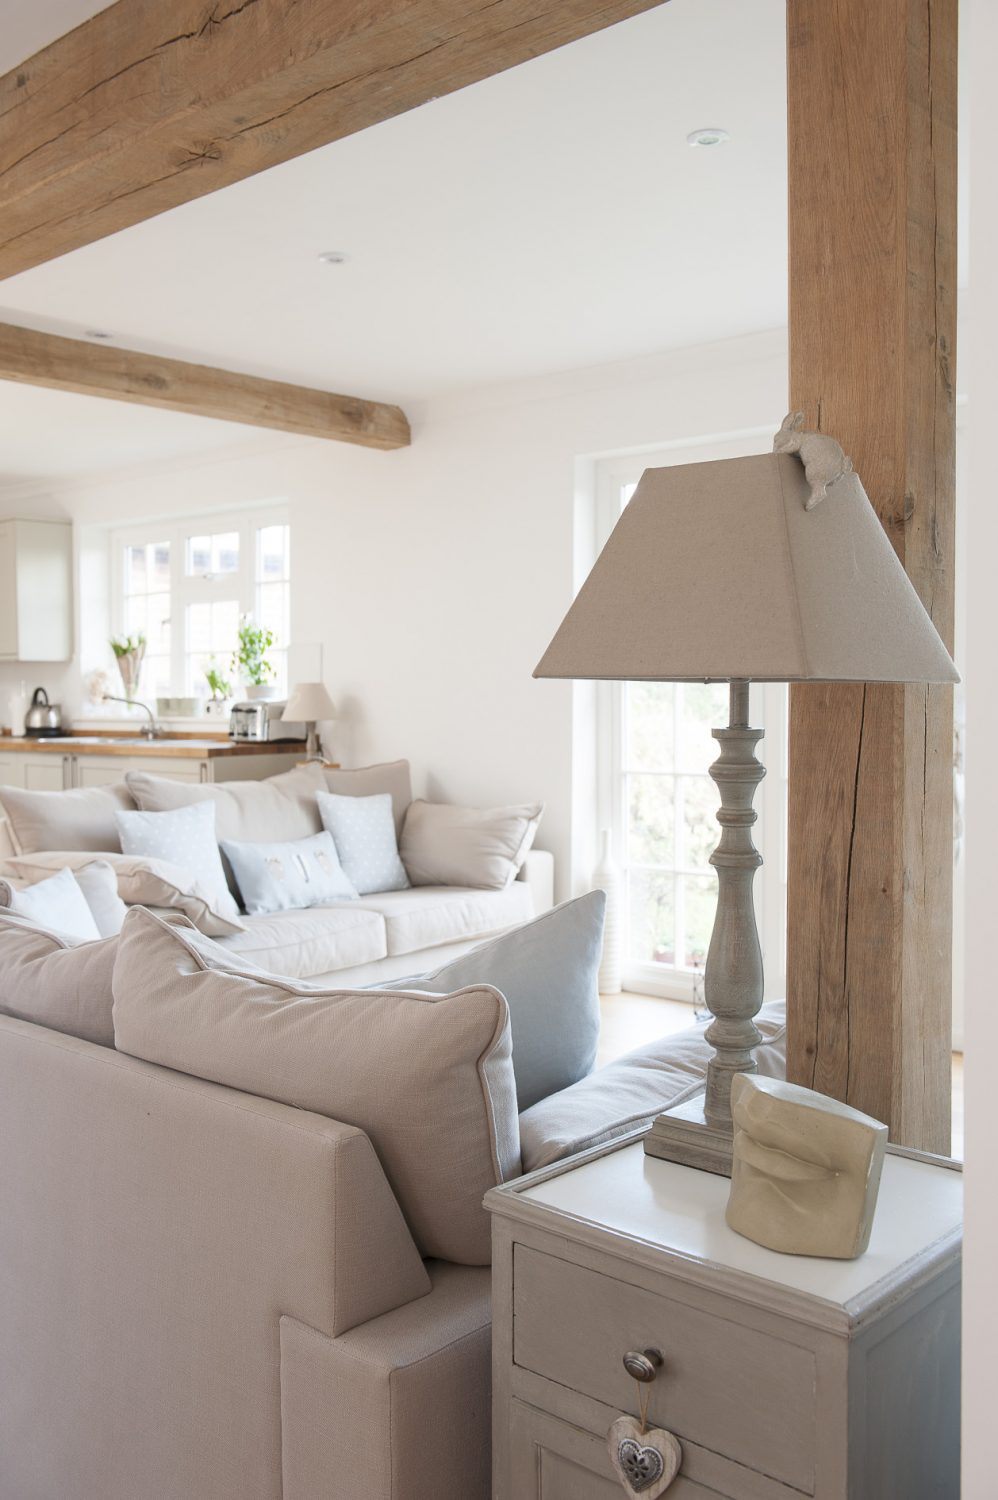 Adhering to a clean palette of whites and shades of grey, Christine has accessoried each room with crisp linens and painted wood furnishings ensuring that each room looks effortlessly uncluttered